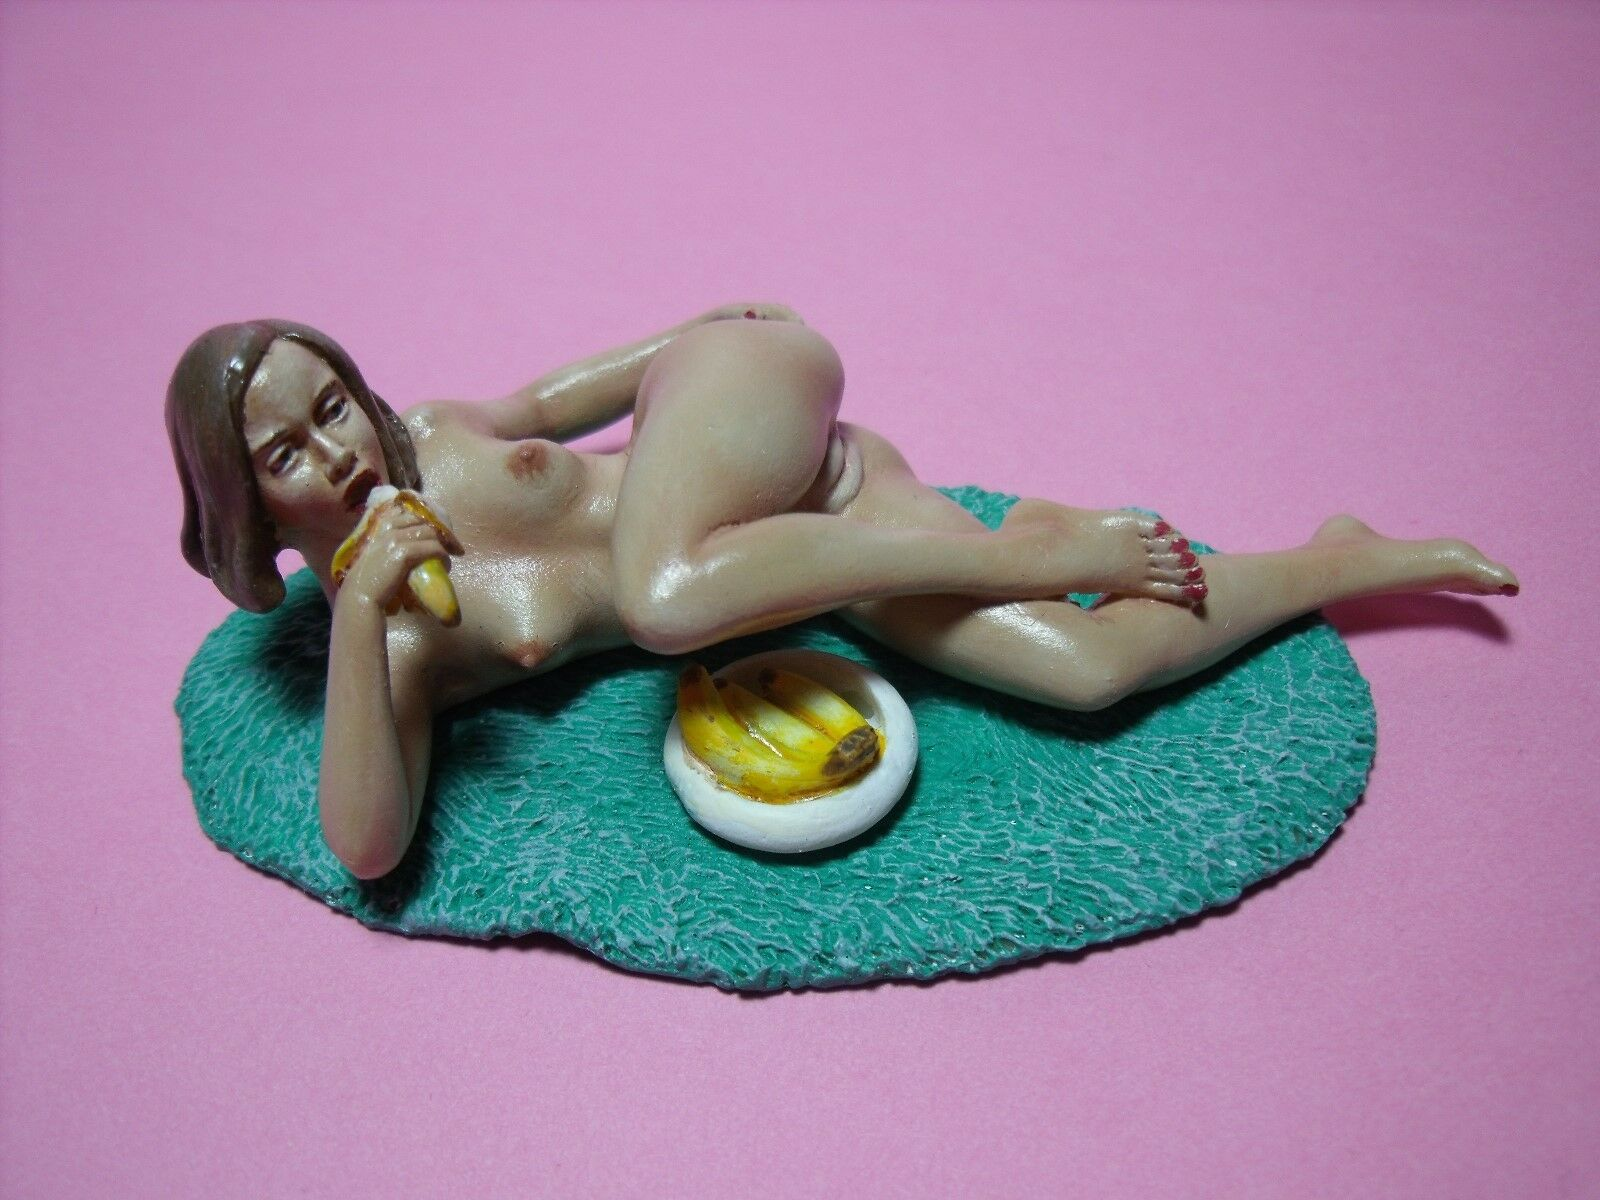 VALENTINE  1 18    UNPAINTED  GIRL  FIGURE  MADE  BY  VROOM   MASCOT  PHOENIX 57d8be